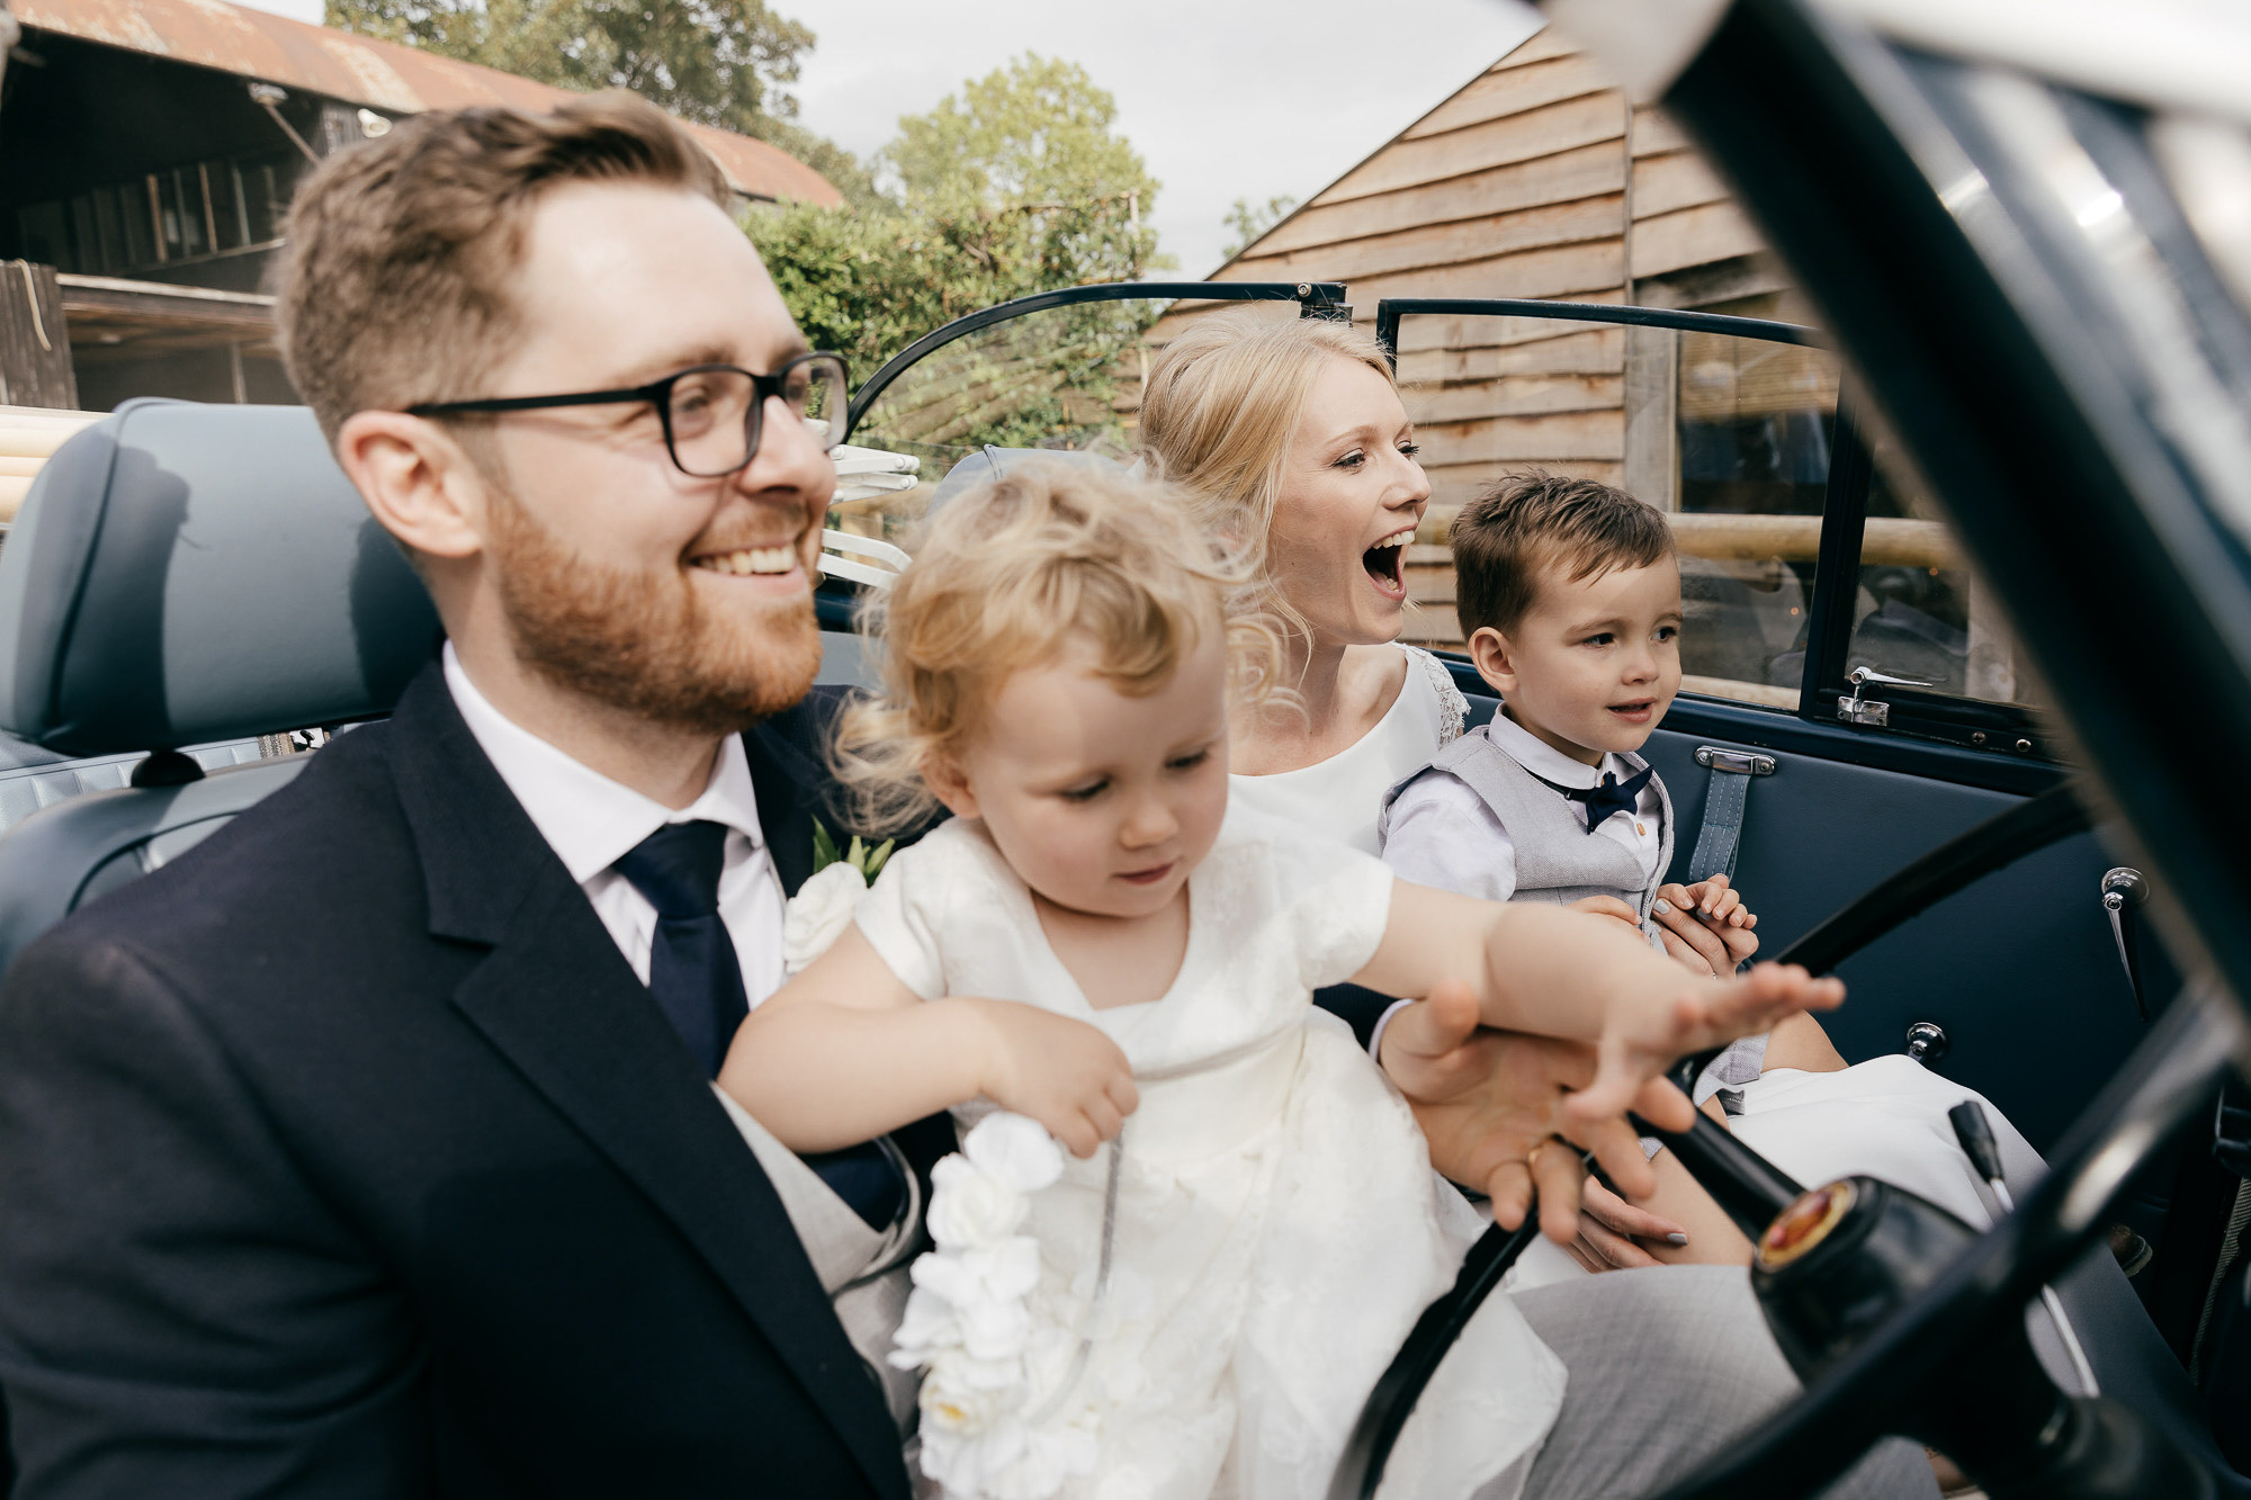 candid photo of bride and groom sat in vintage car with niece and nephew